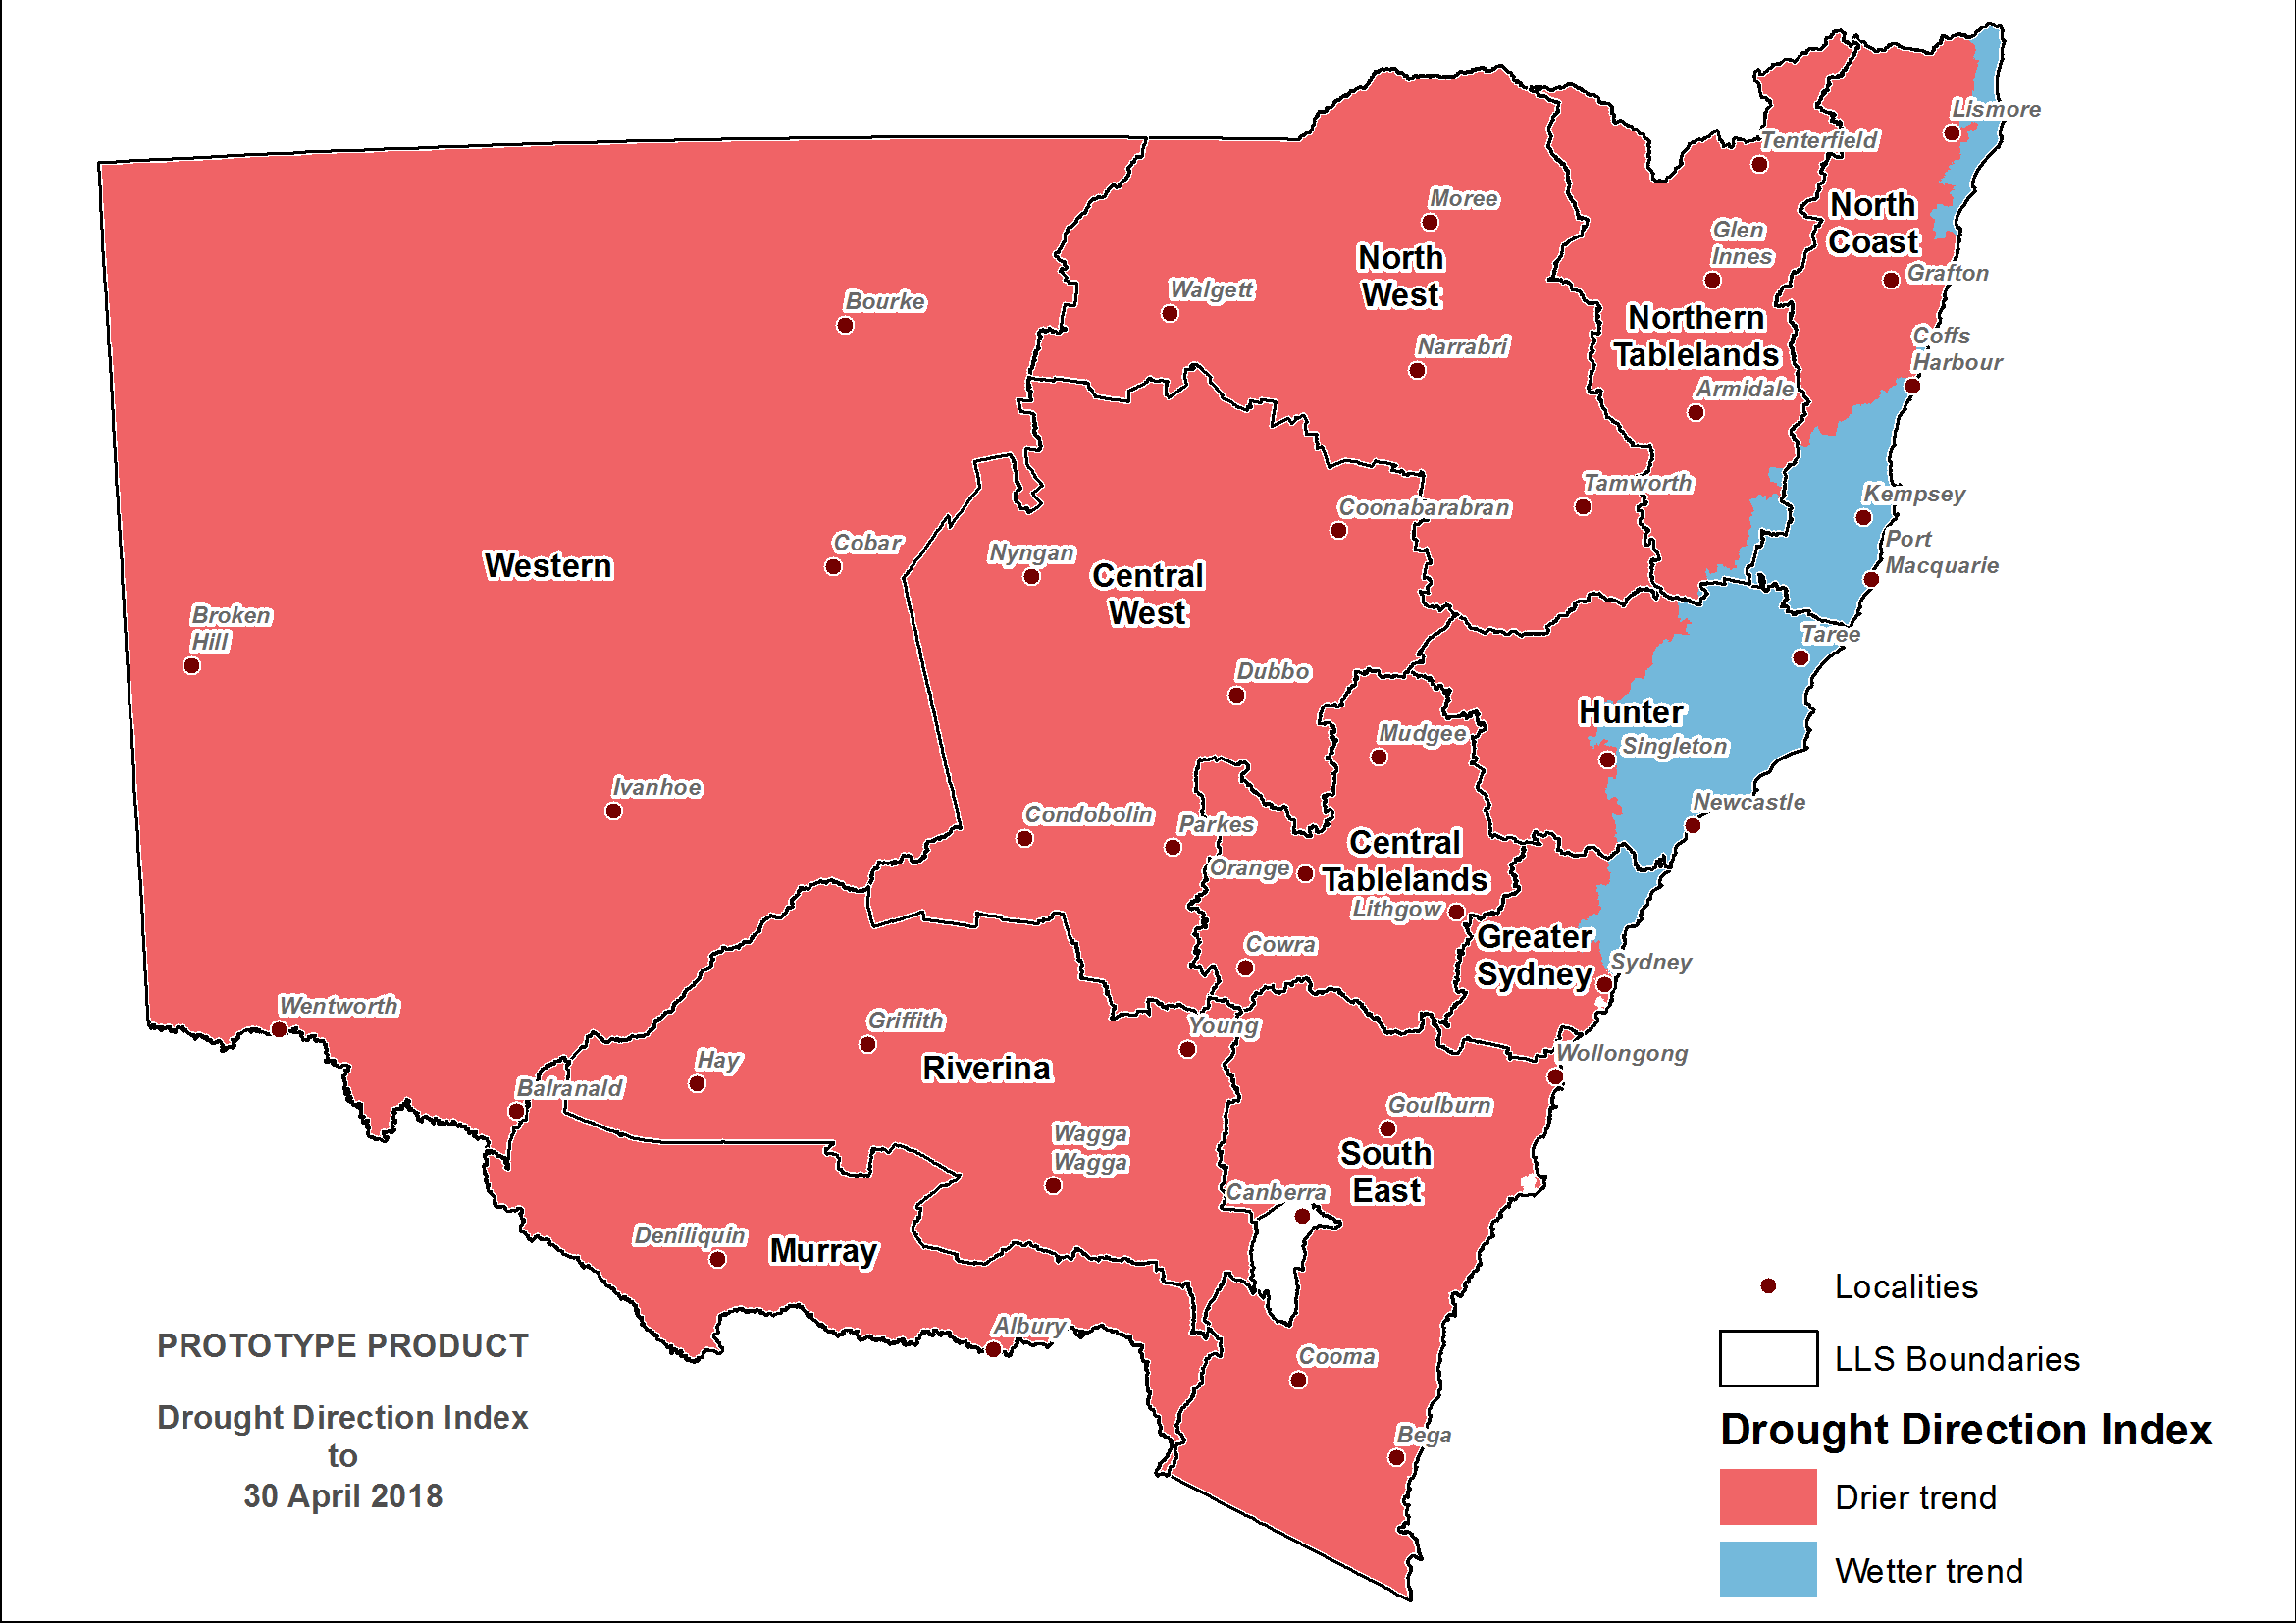 For an accessible explanation of this map contact the author anthony.clark@dpi.nsw.gov.au